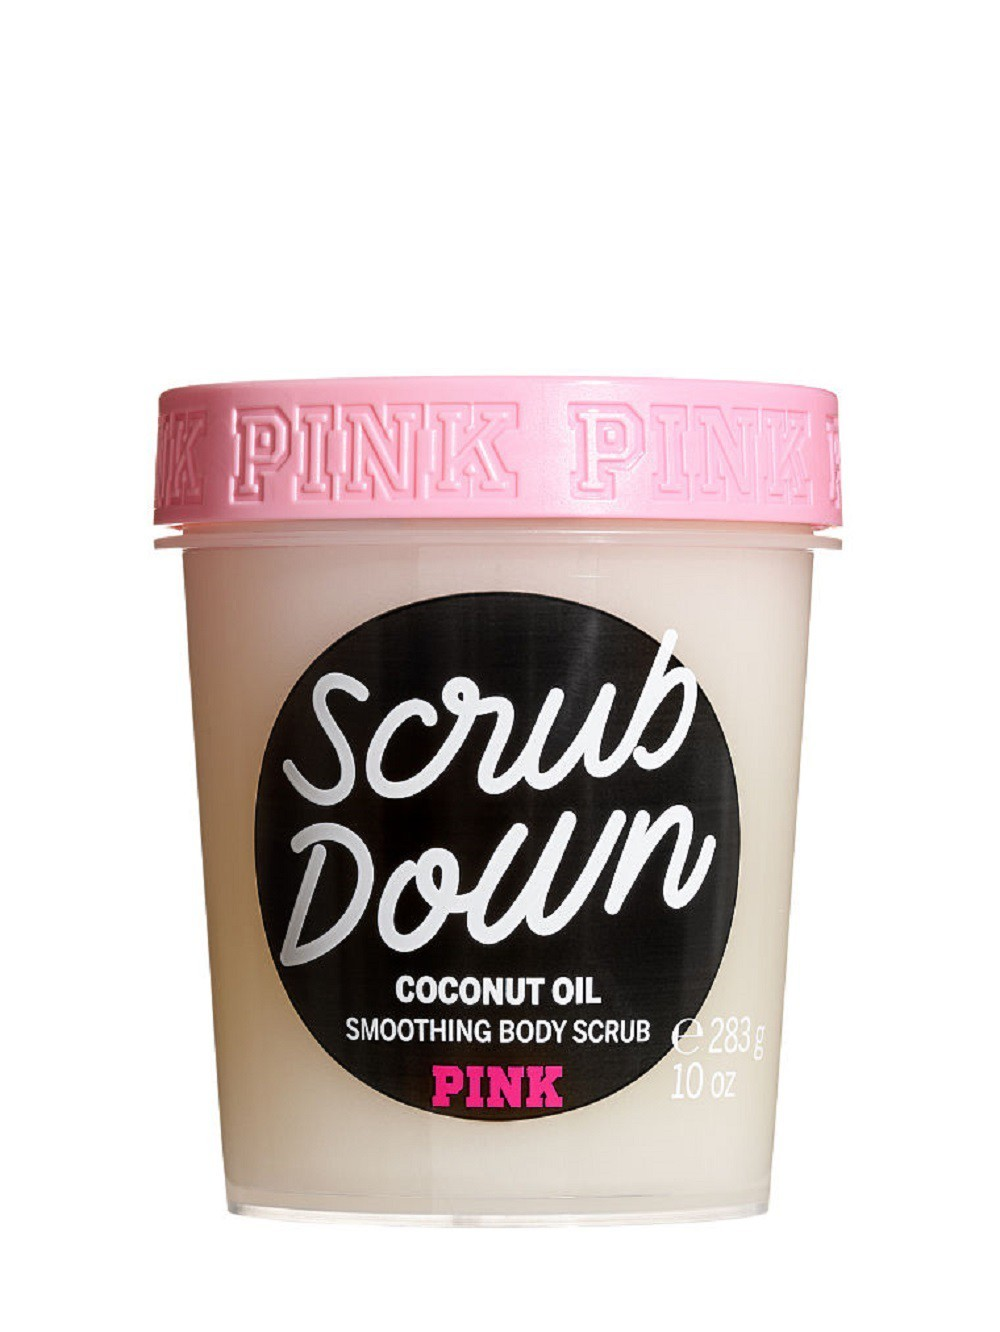 PINK SCRUB DOWN COCONUT OIL SMOOTHING BODY - VICTORIA'S SECRET